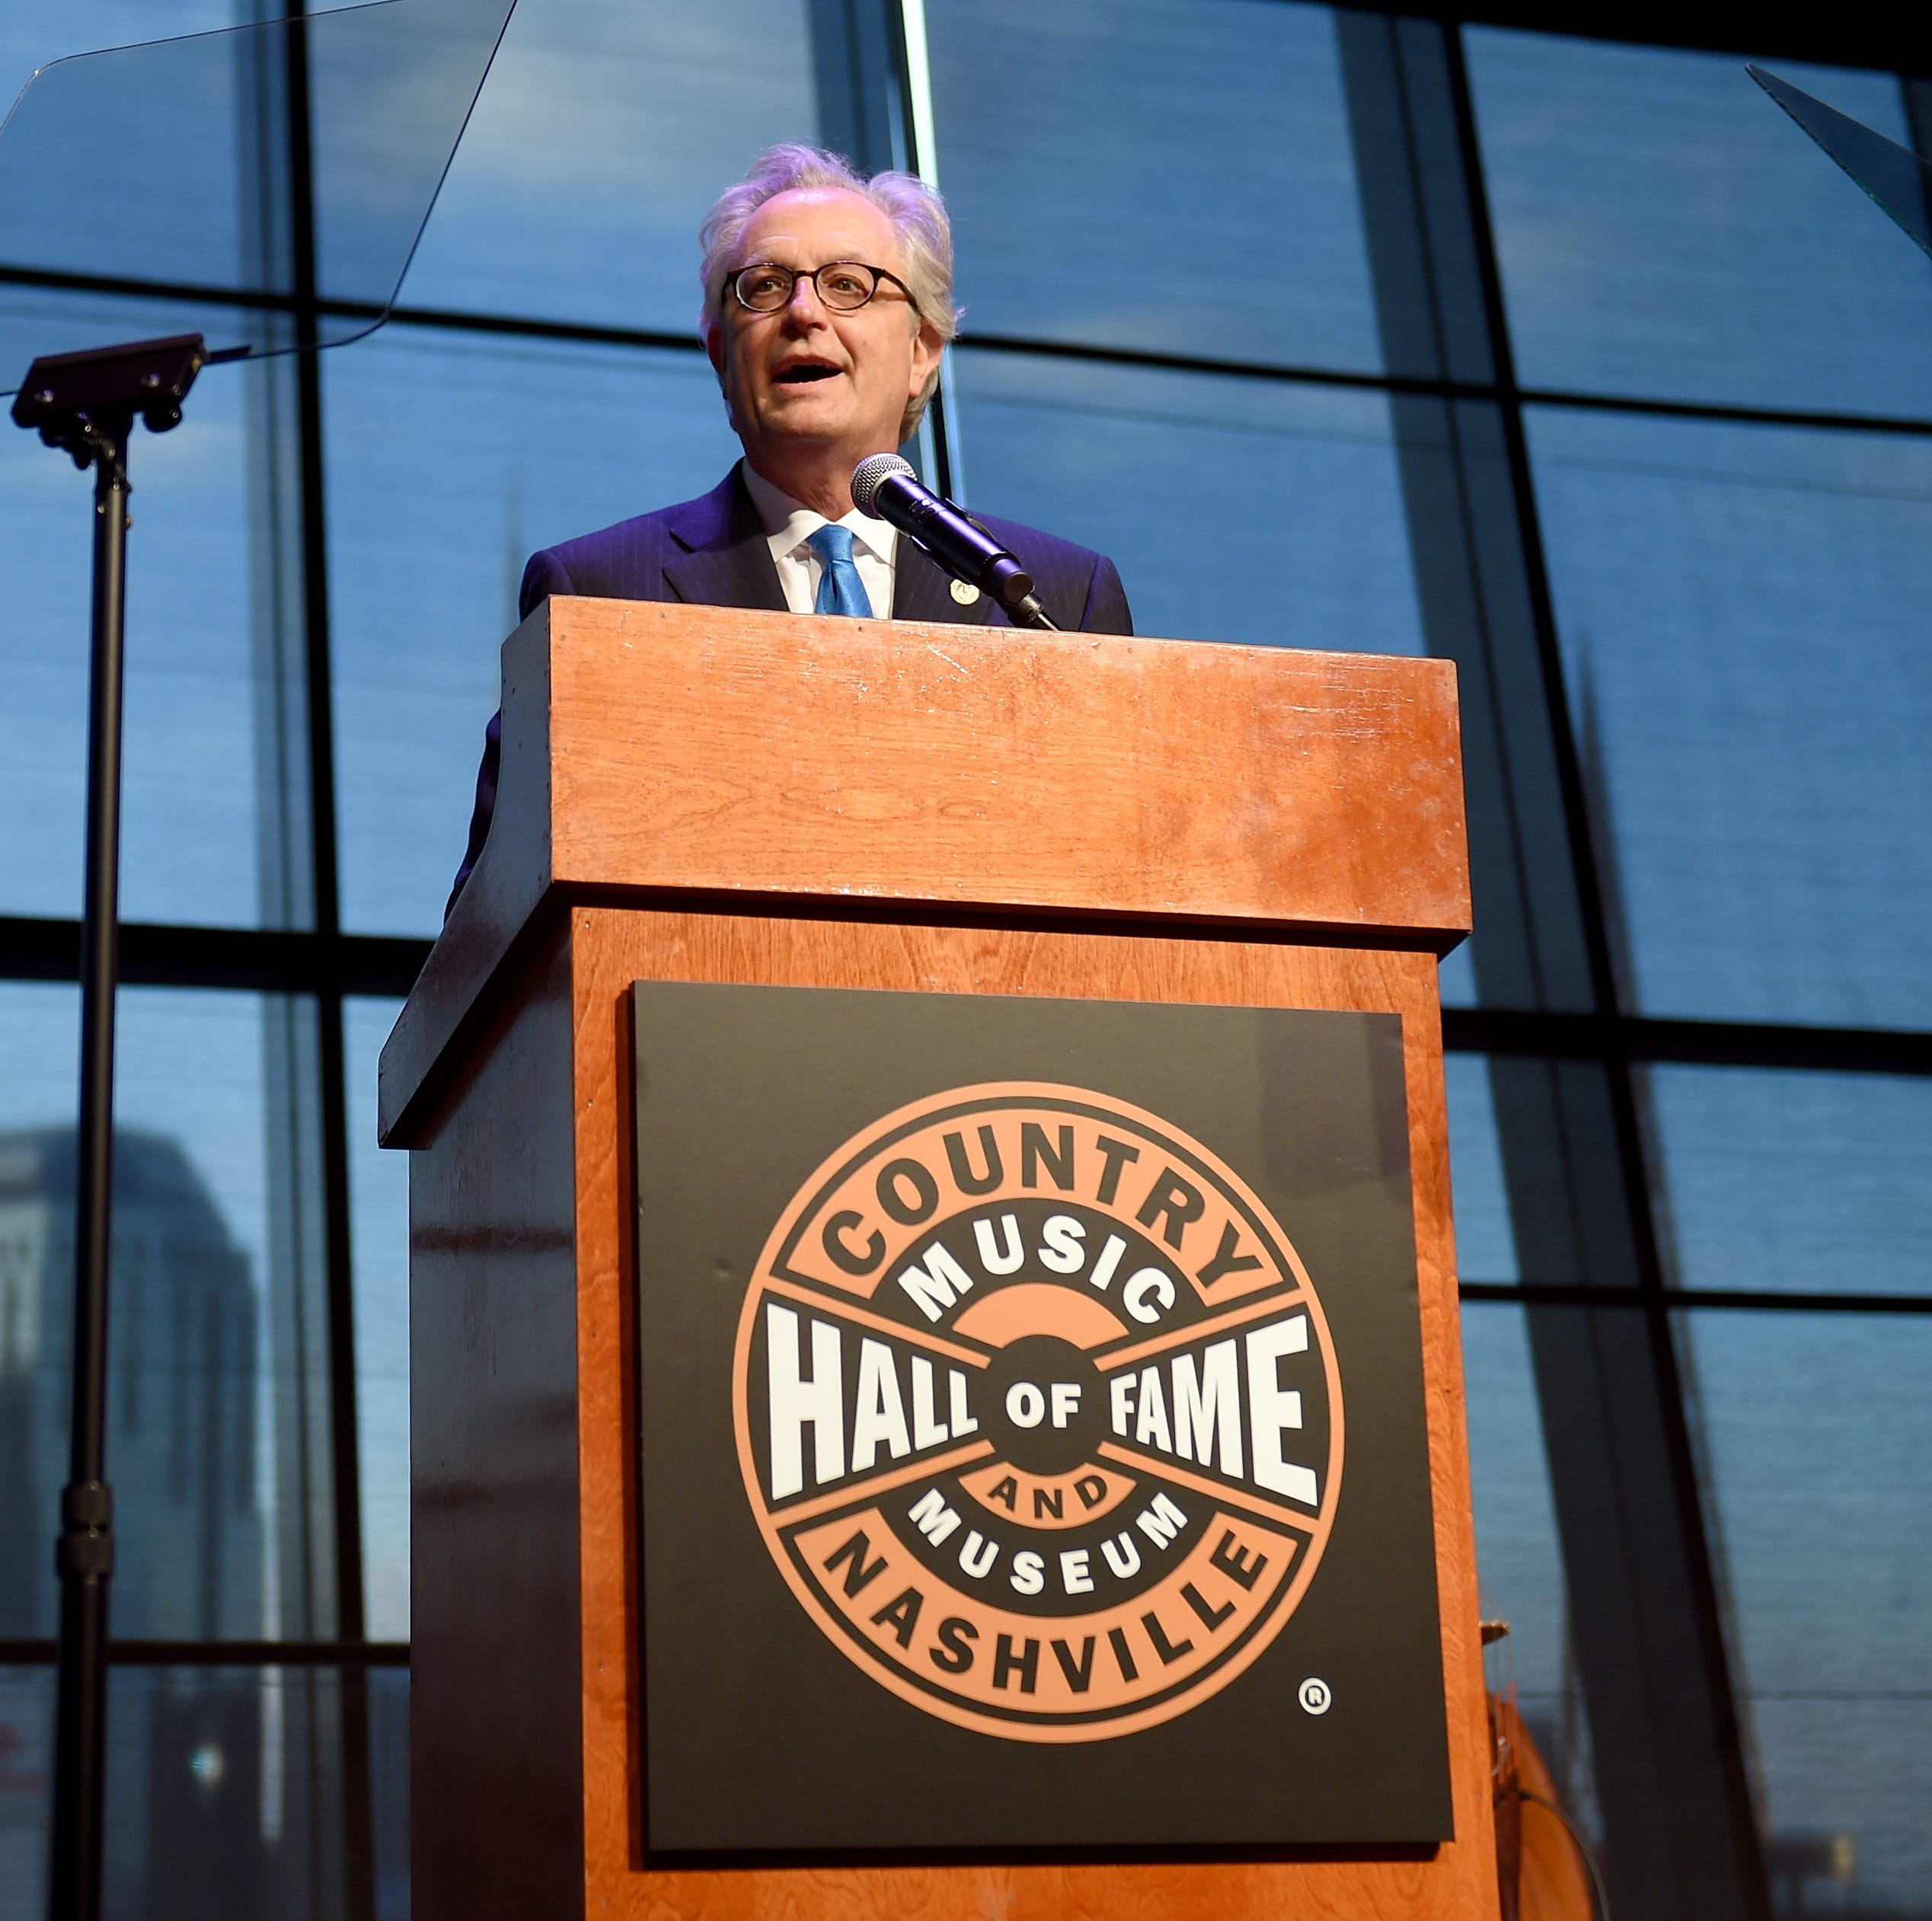 Watch live: Country Music Hall of Fame 2019 inductees announcement